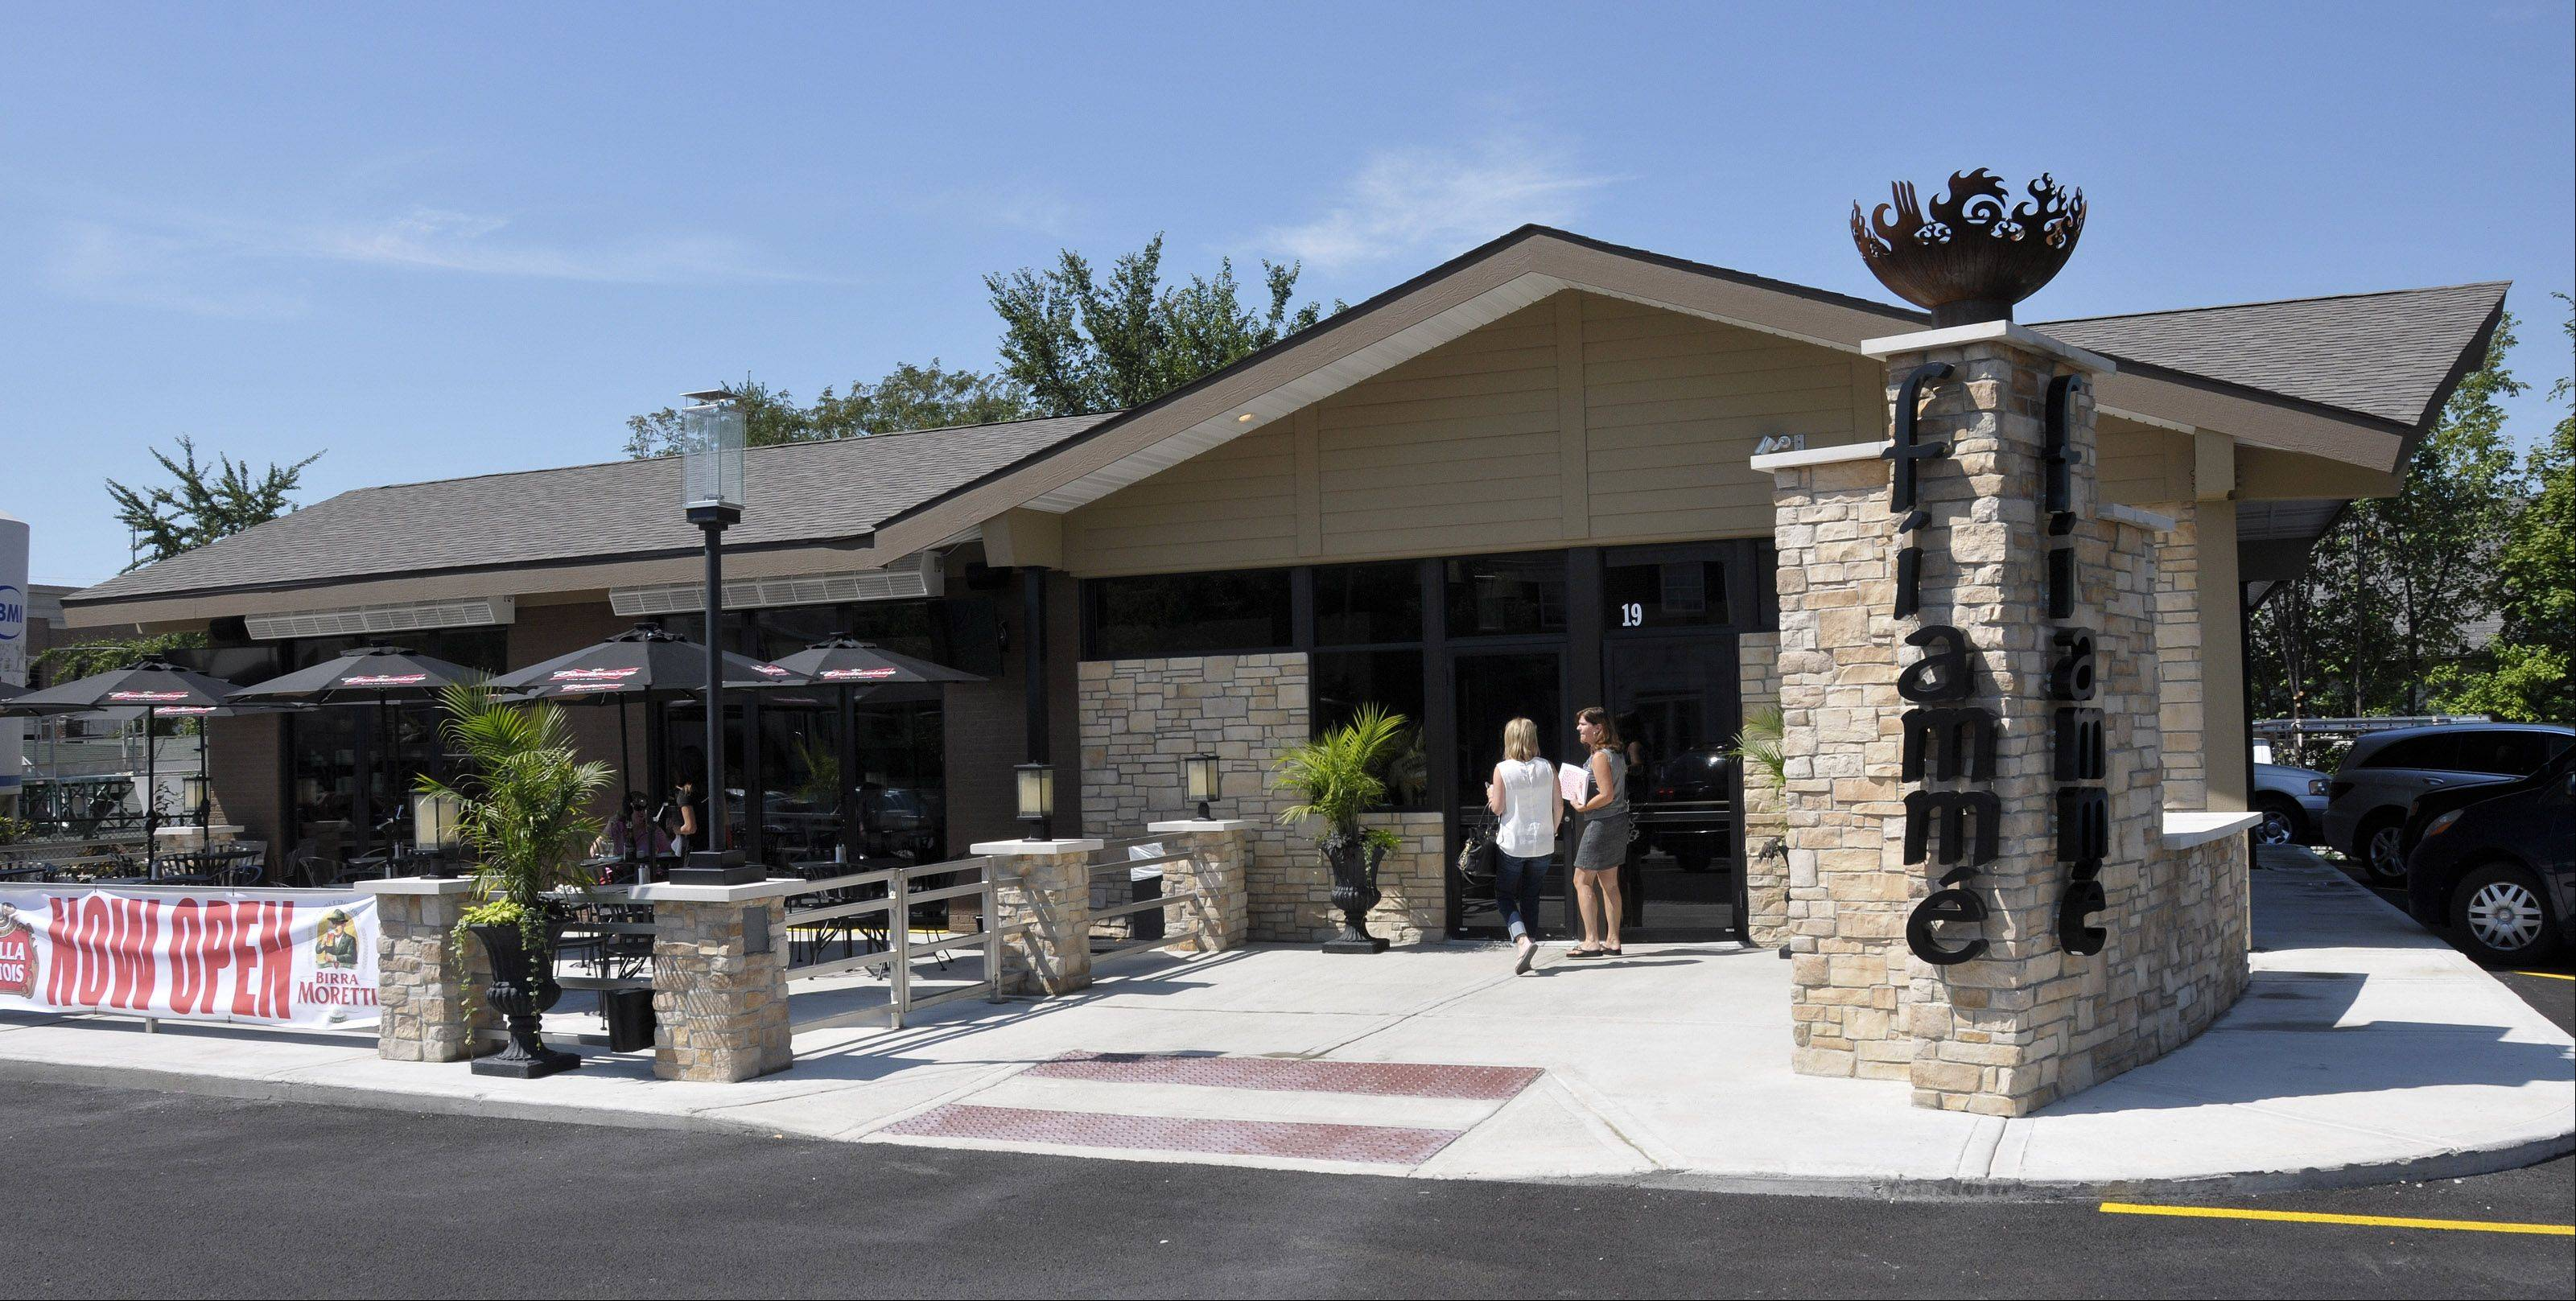 A new pizza restaurant, Fiamme, is open on Washington Street at Van Buren Avenue in Naperville. It's the site of an old Union 76 gas station.